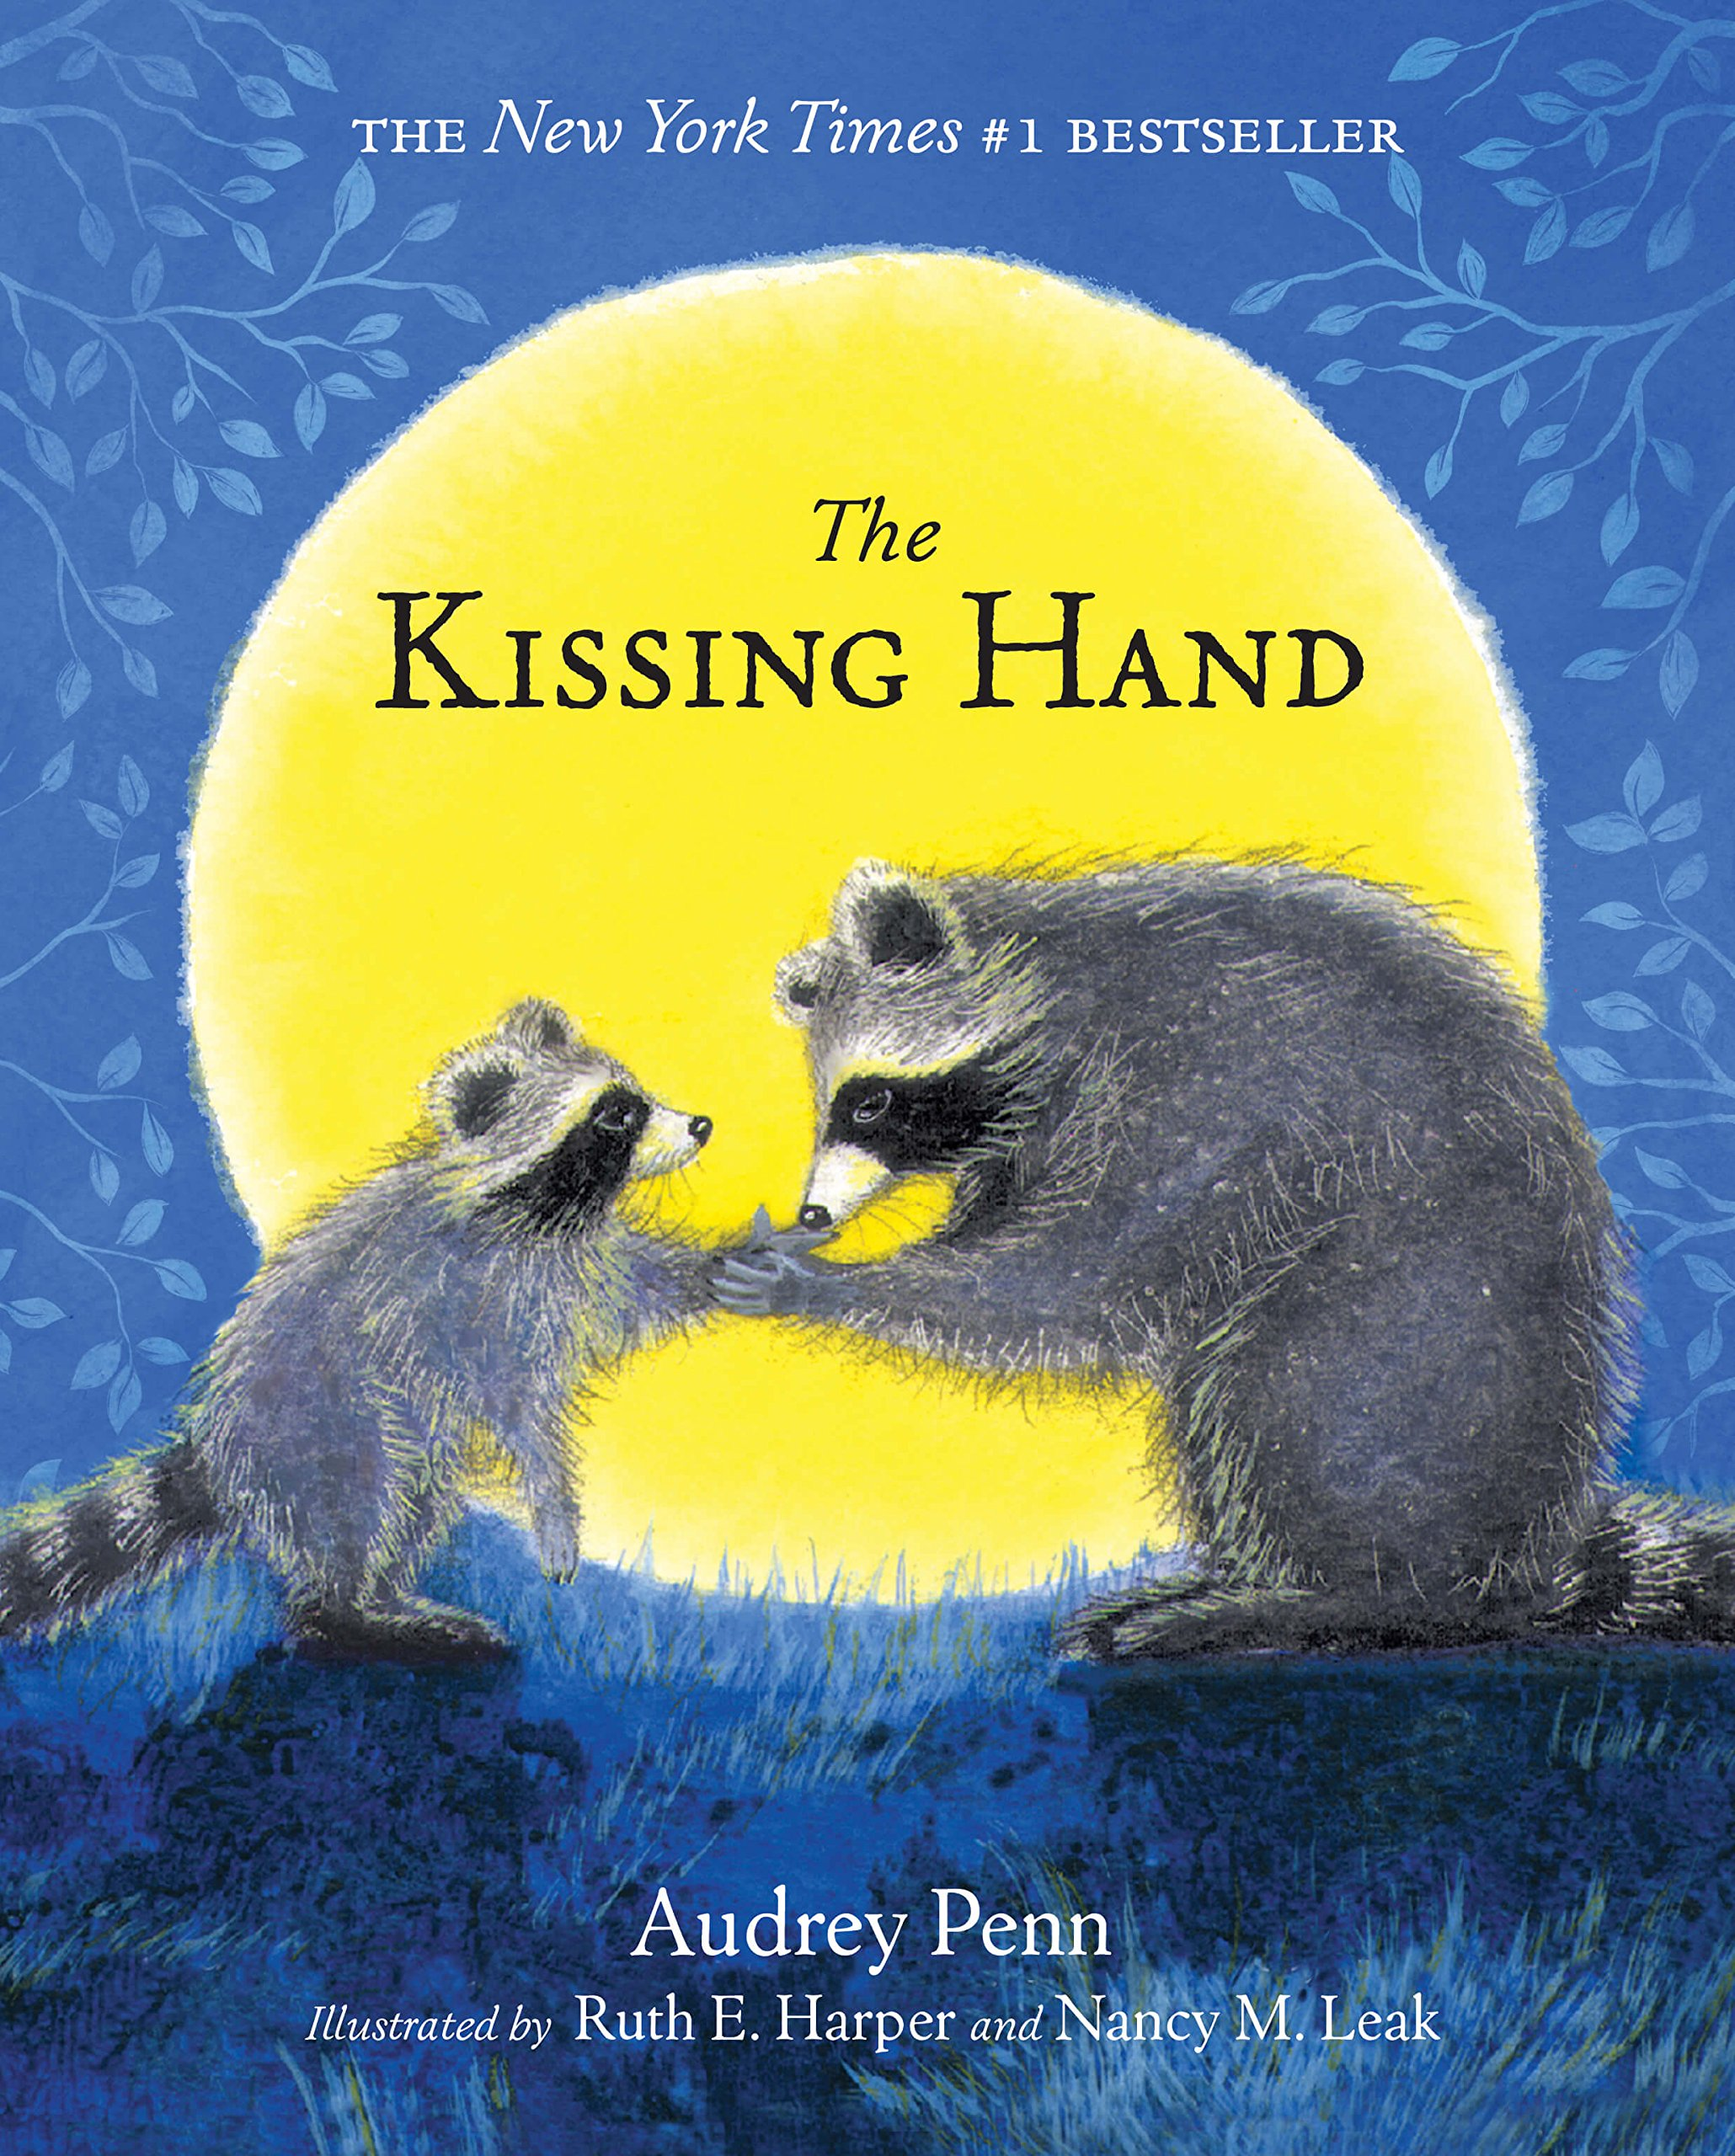 The Kissing Hand - Audrey Penn